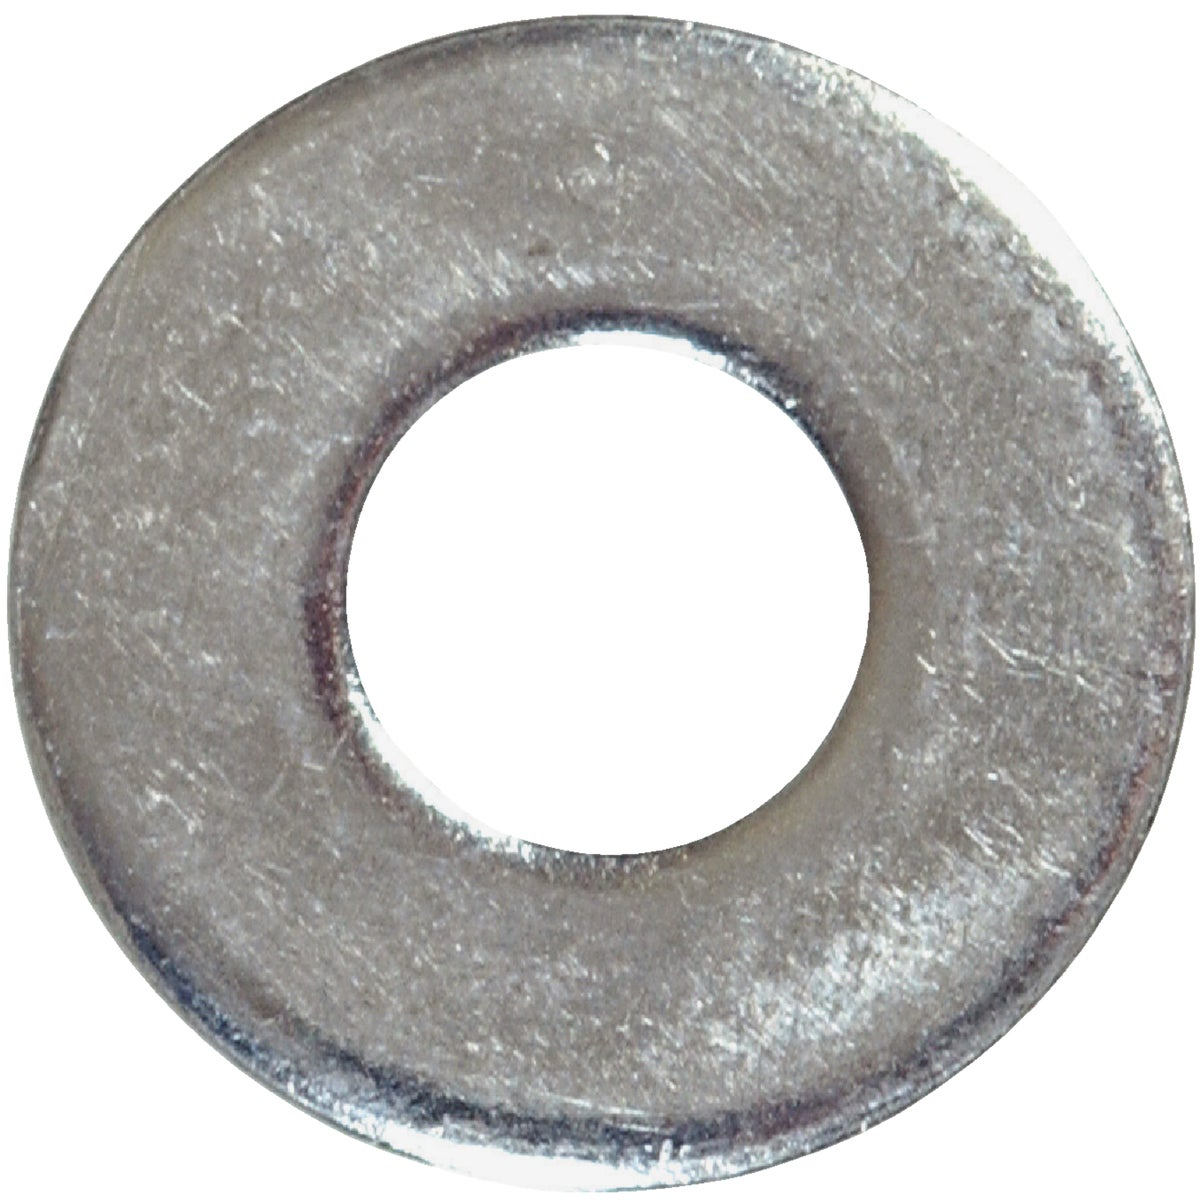 "50PC 7/16""USS FLT WASHER - 270064 by Hillman Fastener"